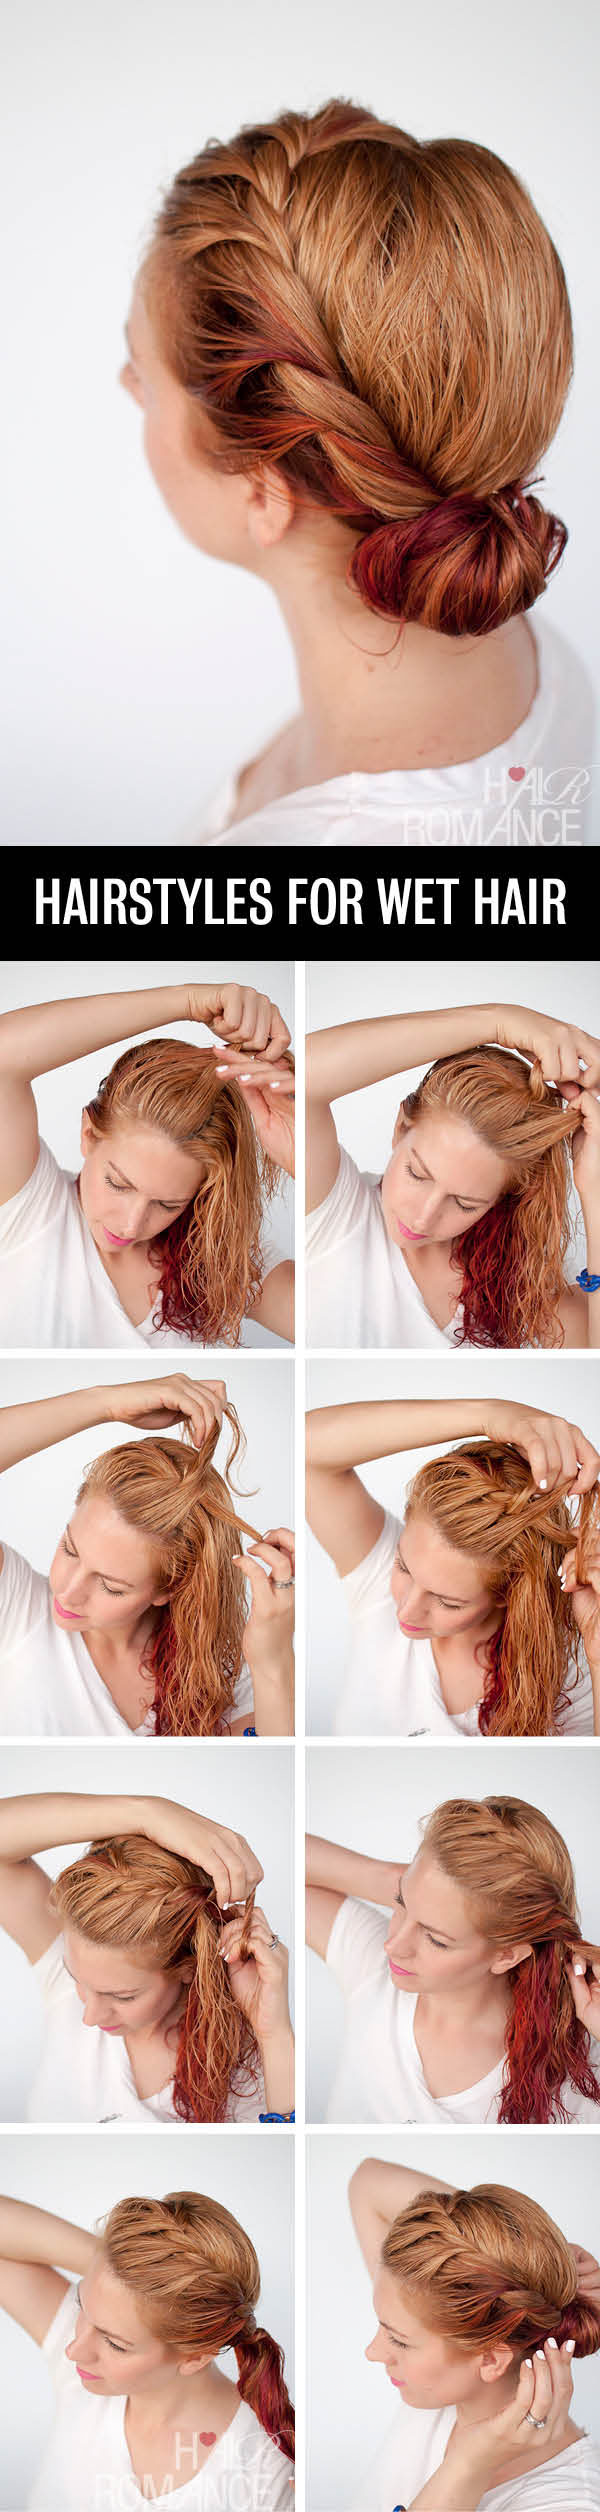 Hair Romance - Hairstyle tutorials for wet hair - the side twist bun